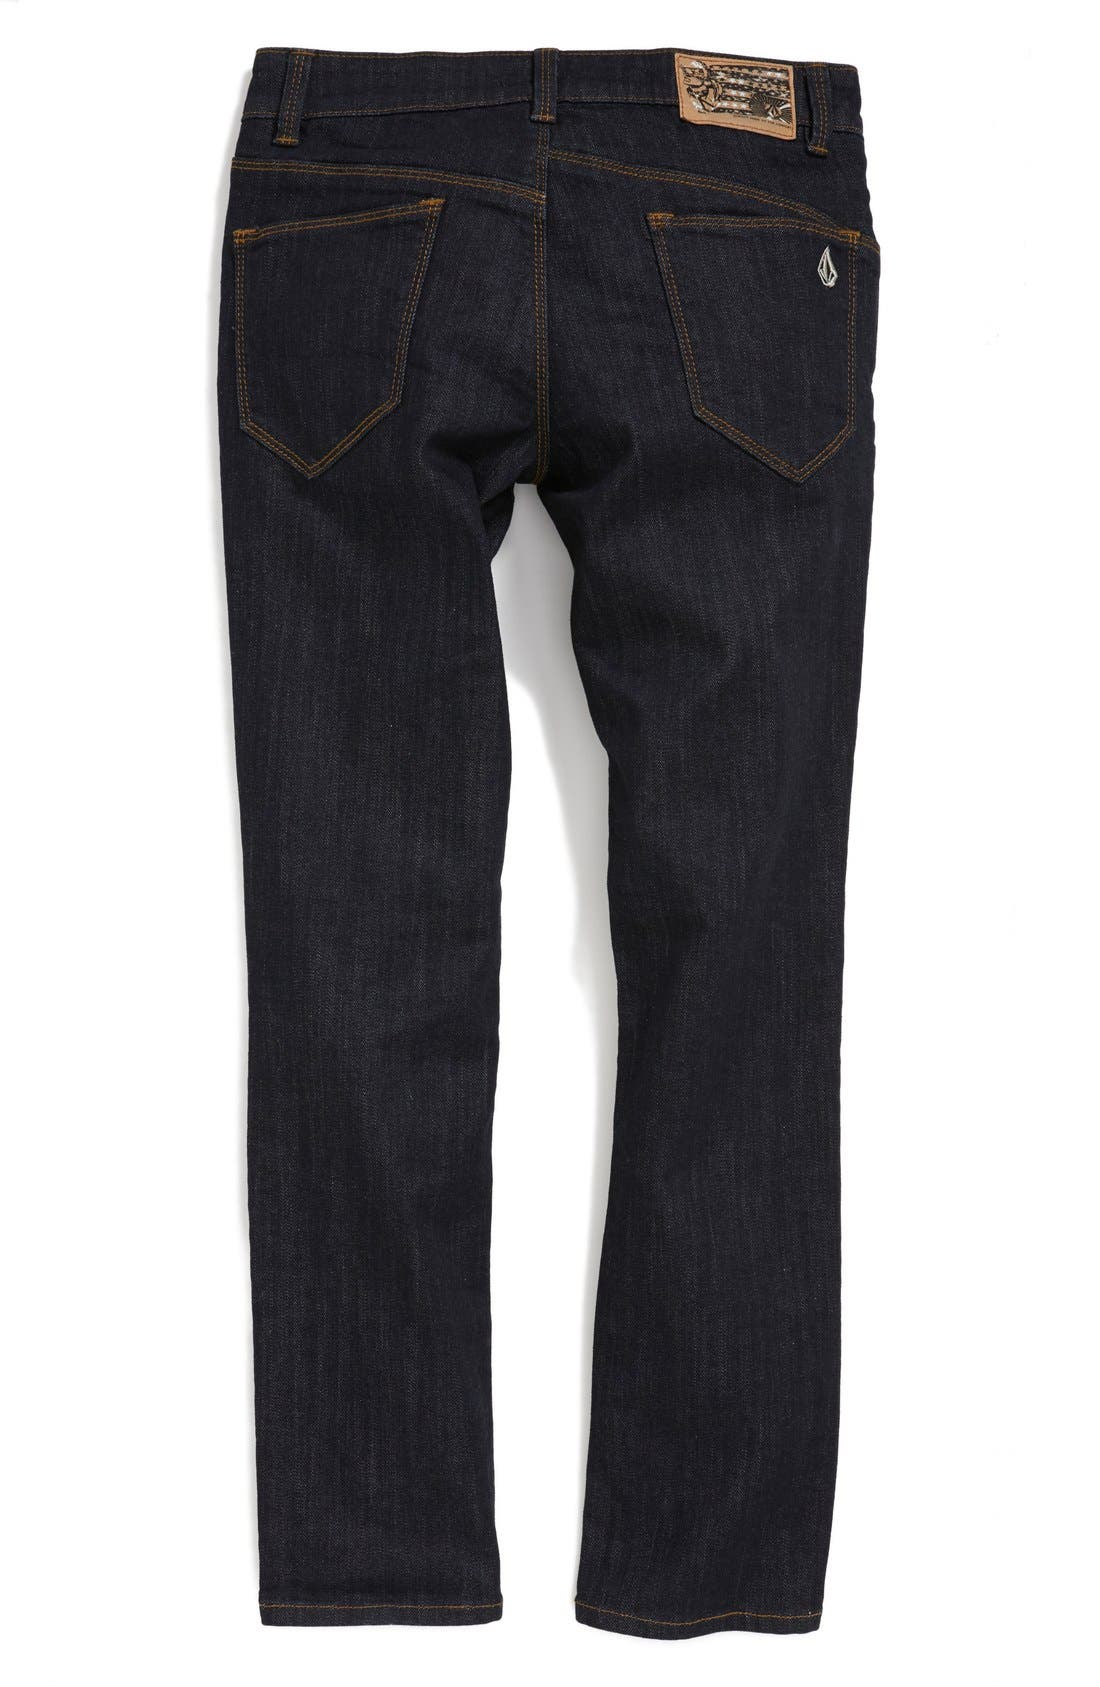 Alternate Image 2  - Volcom 'Riser' Skinny Straight Leg Jeans (Big Boys)